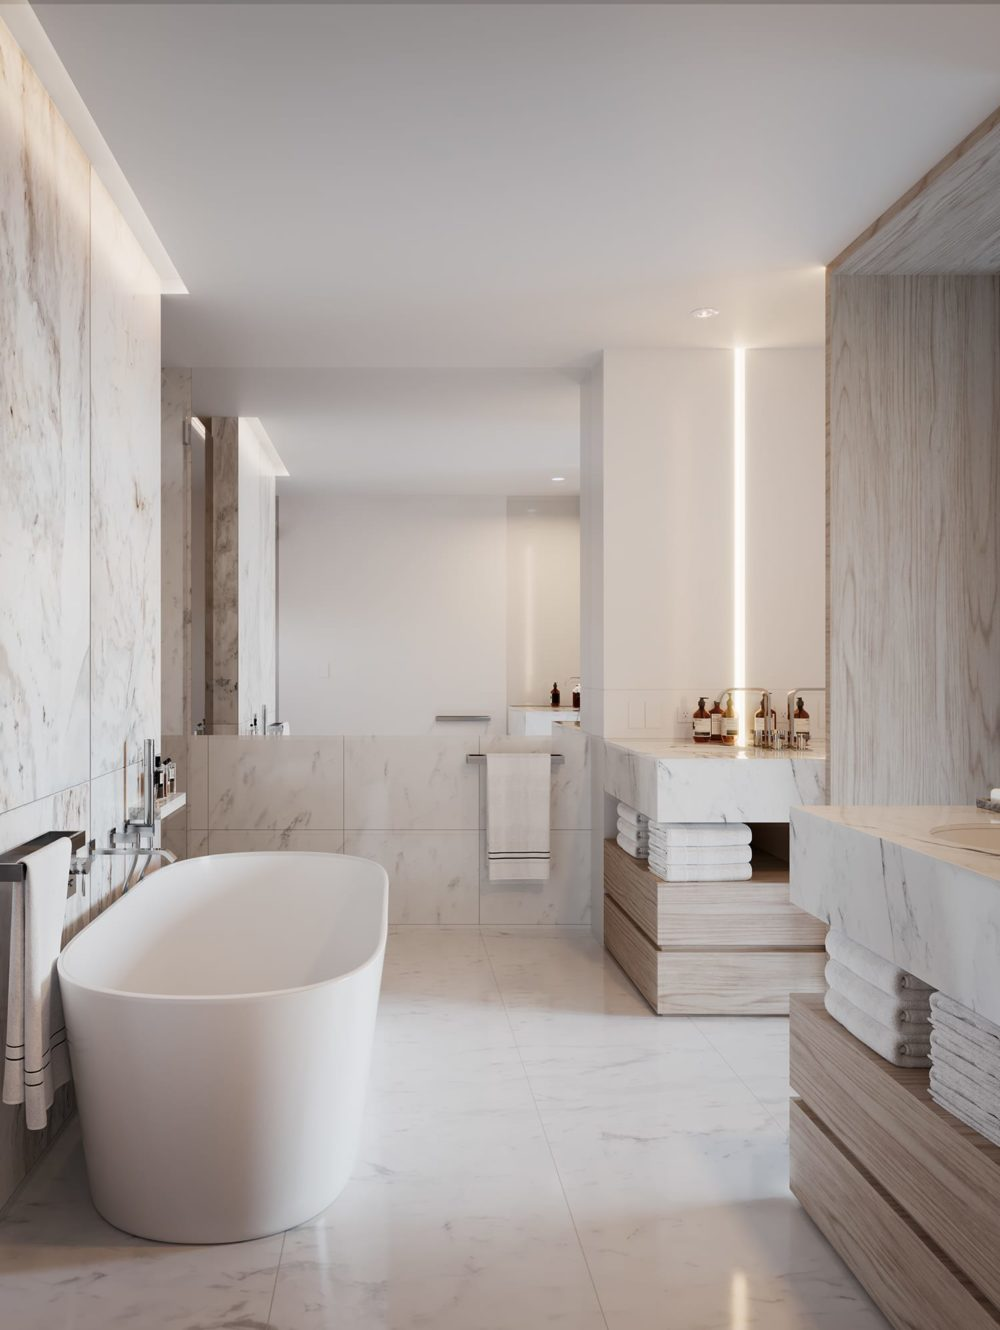 Master bathroom at One Steuart Lane in SF. Marble finishes & white floor with two vanities, standing shower, and soaking tub.